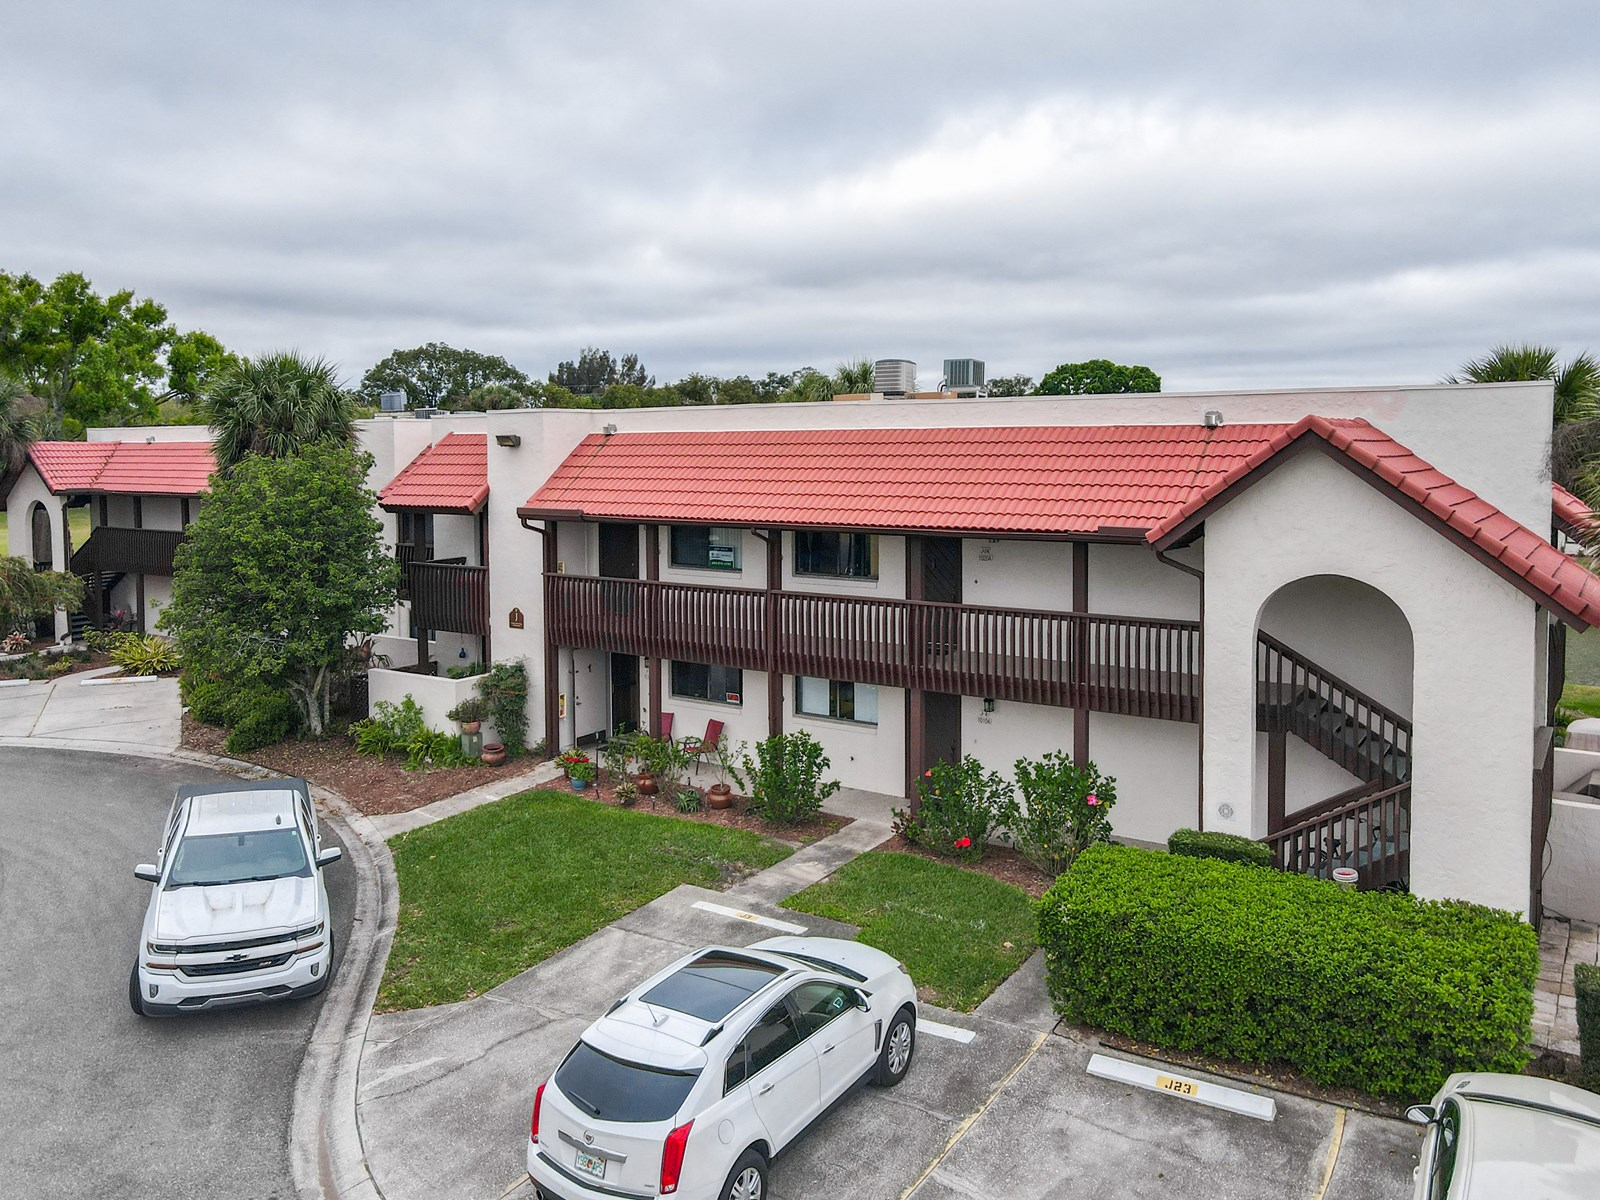 2/2 CONDO IN GOLF COMMUNITY, CENTRAL FLORIDA, COUNTRY CLUB